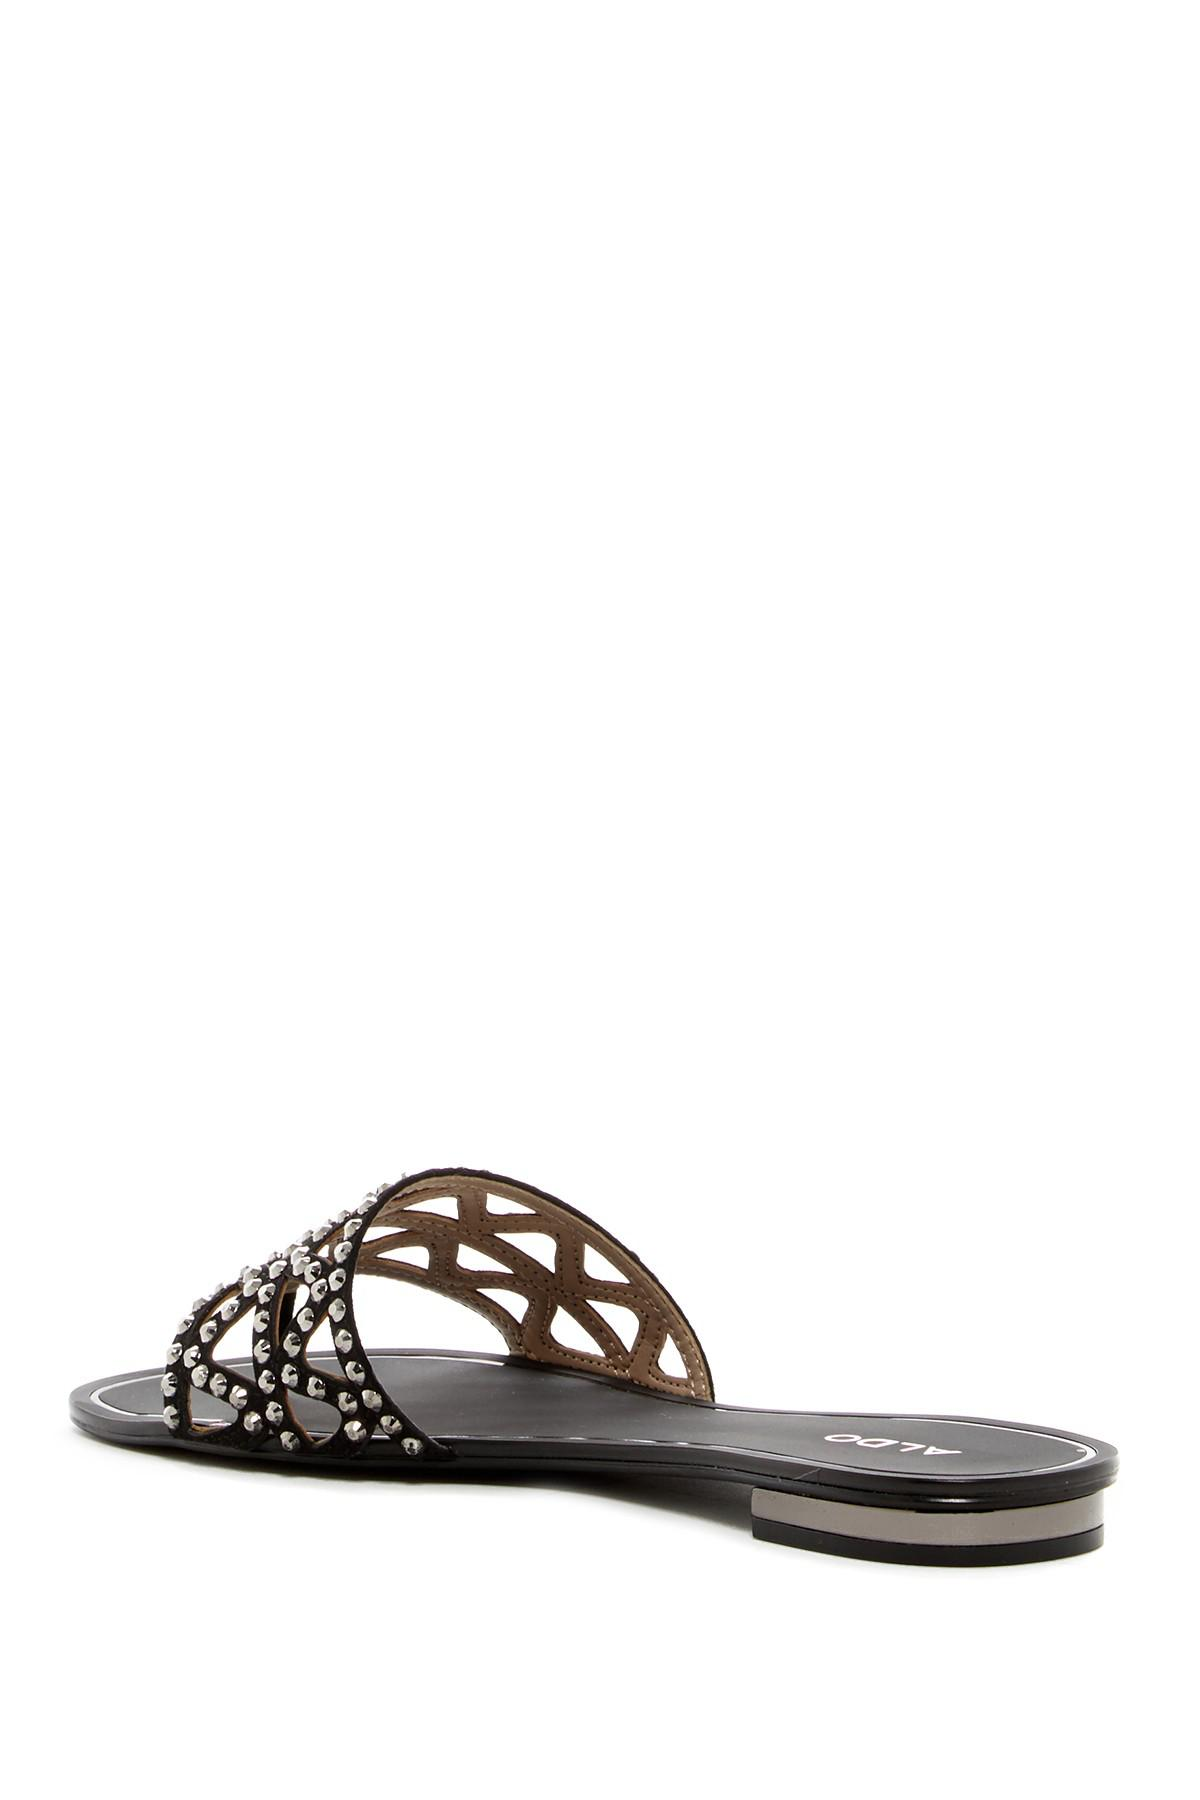 565602669aef Lyst - ALDO Fridia Studded Cutout Thong Sandal in Black